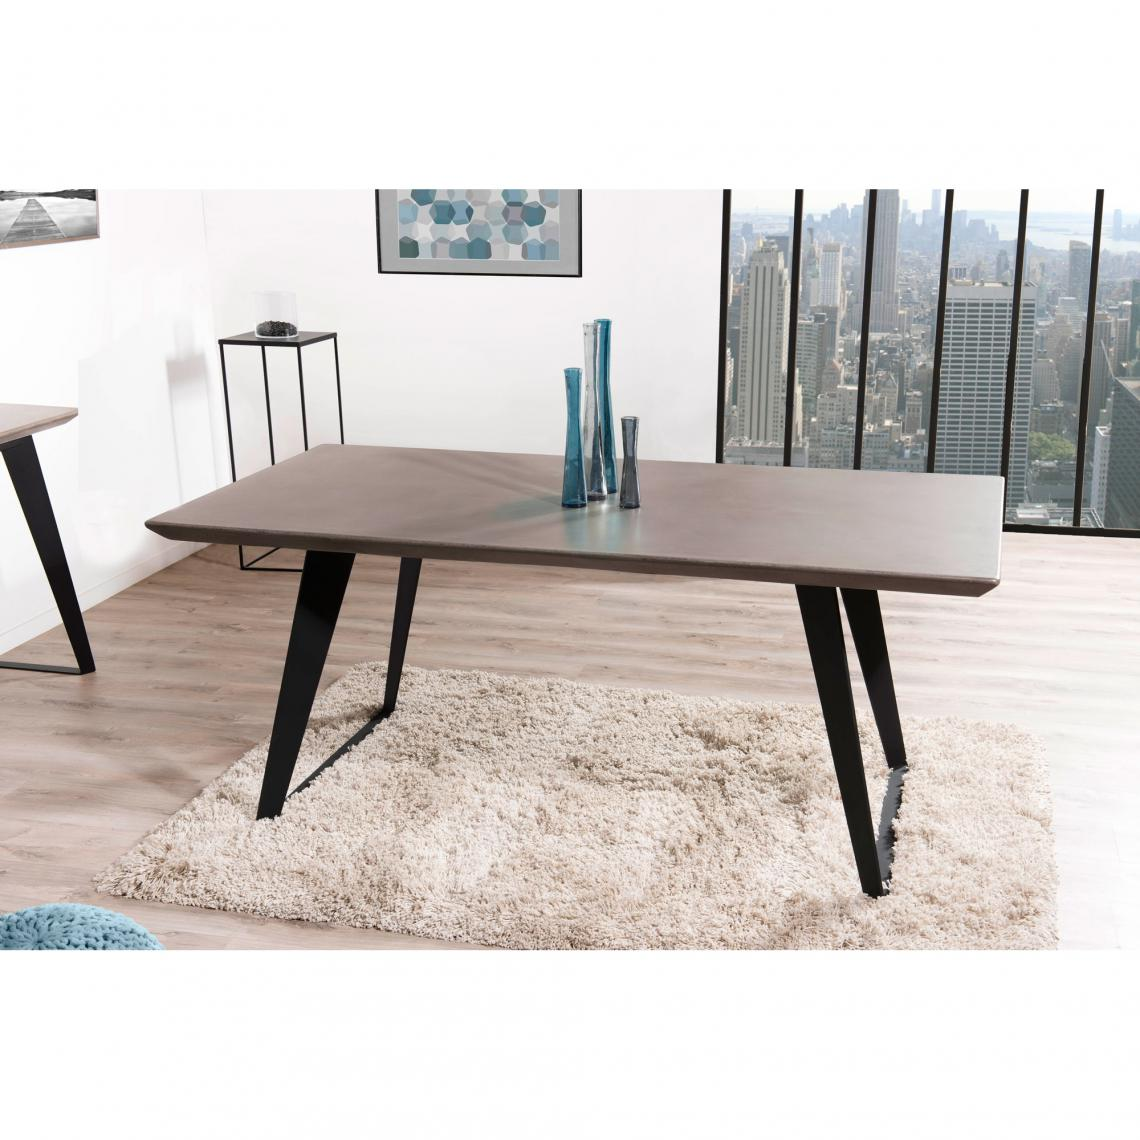 table manger rectangulaire beton cire pieds metal 180 x 90 cm style industriel